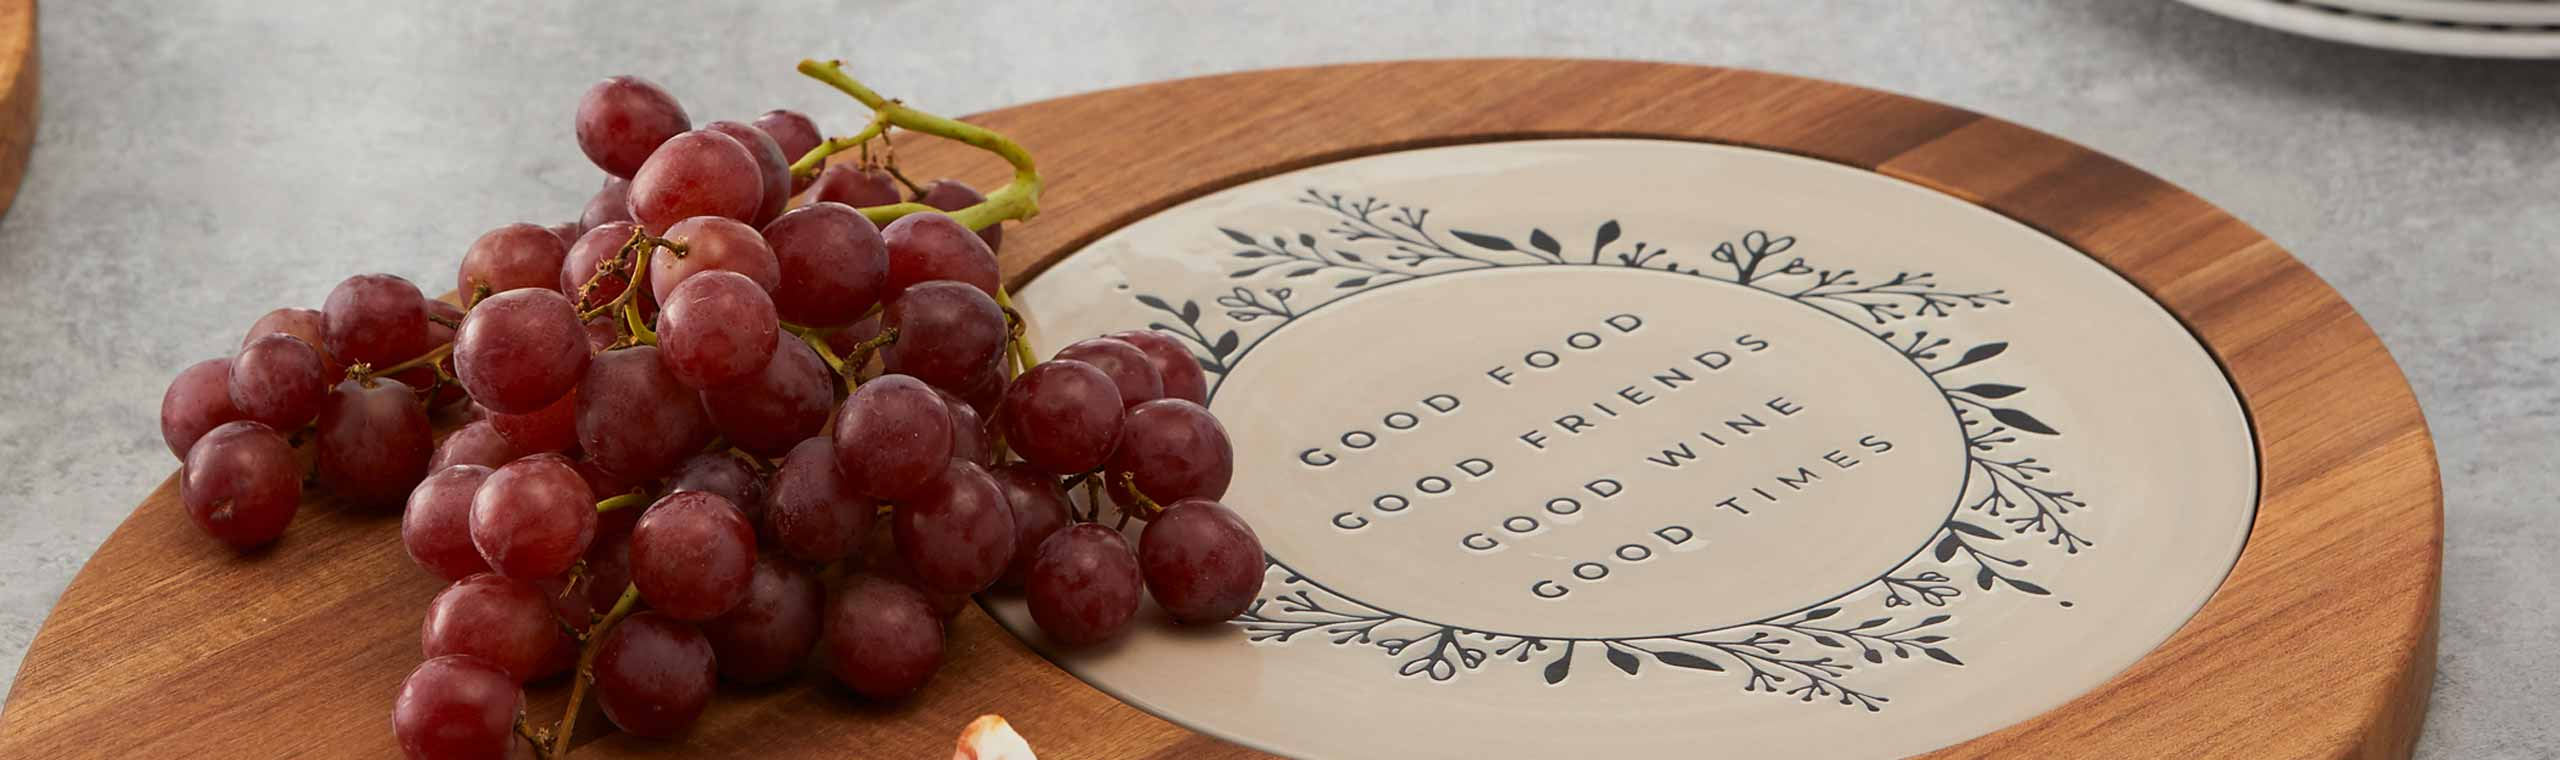 wooden plater with a ceramic disk and an inspriing quote